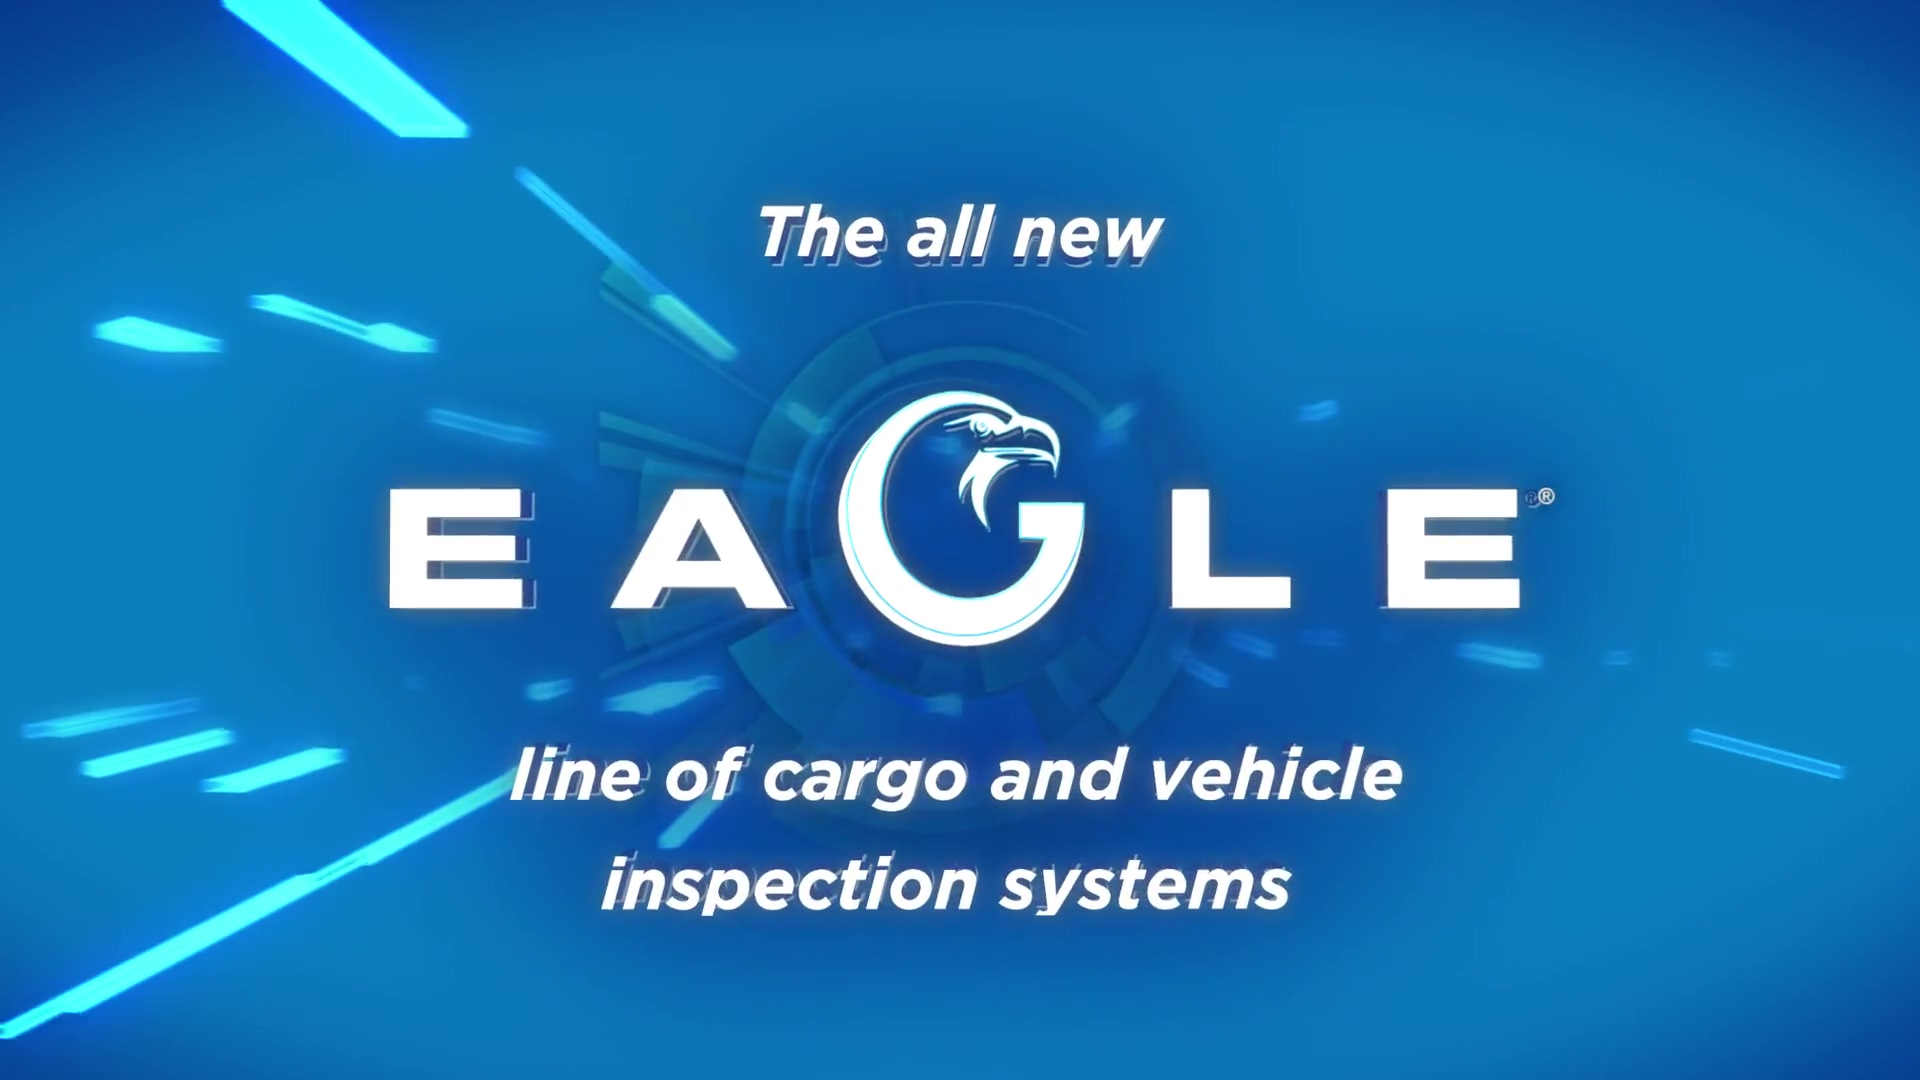 I Scan with Introducing the Eagle Line_HD 1920x1080